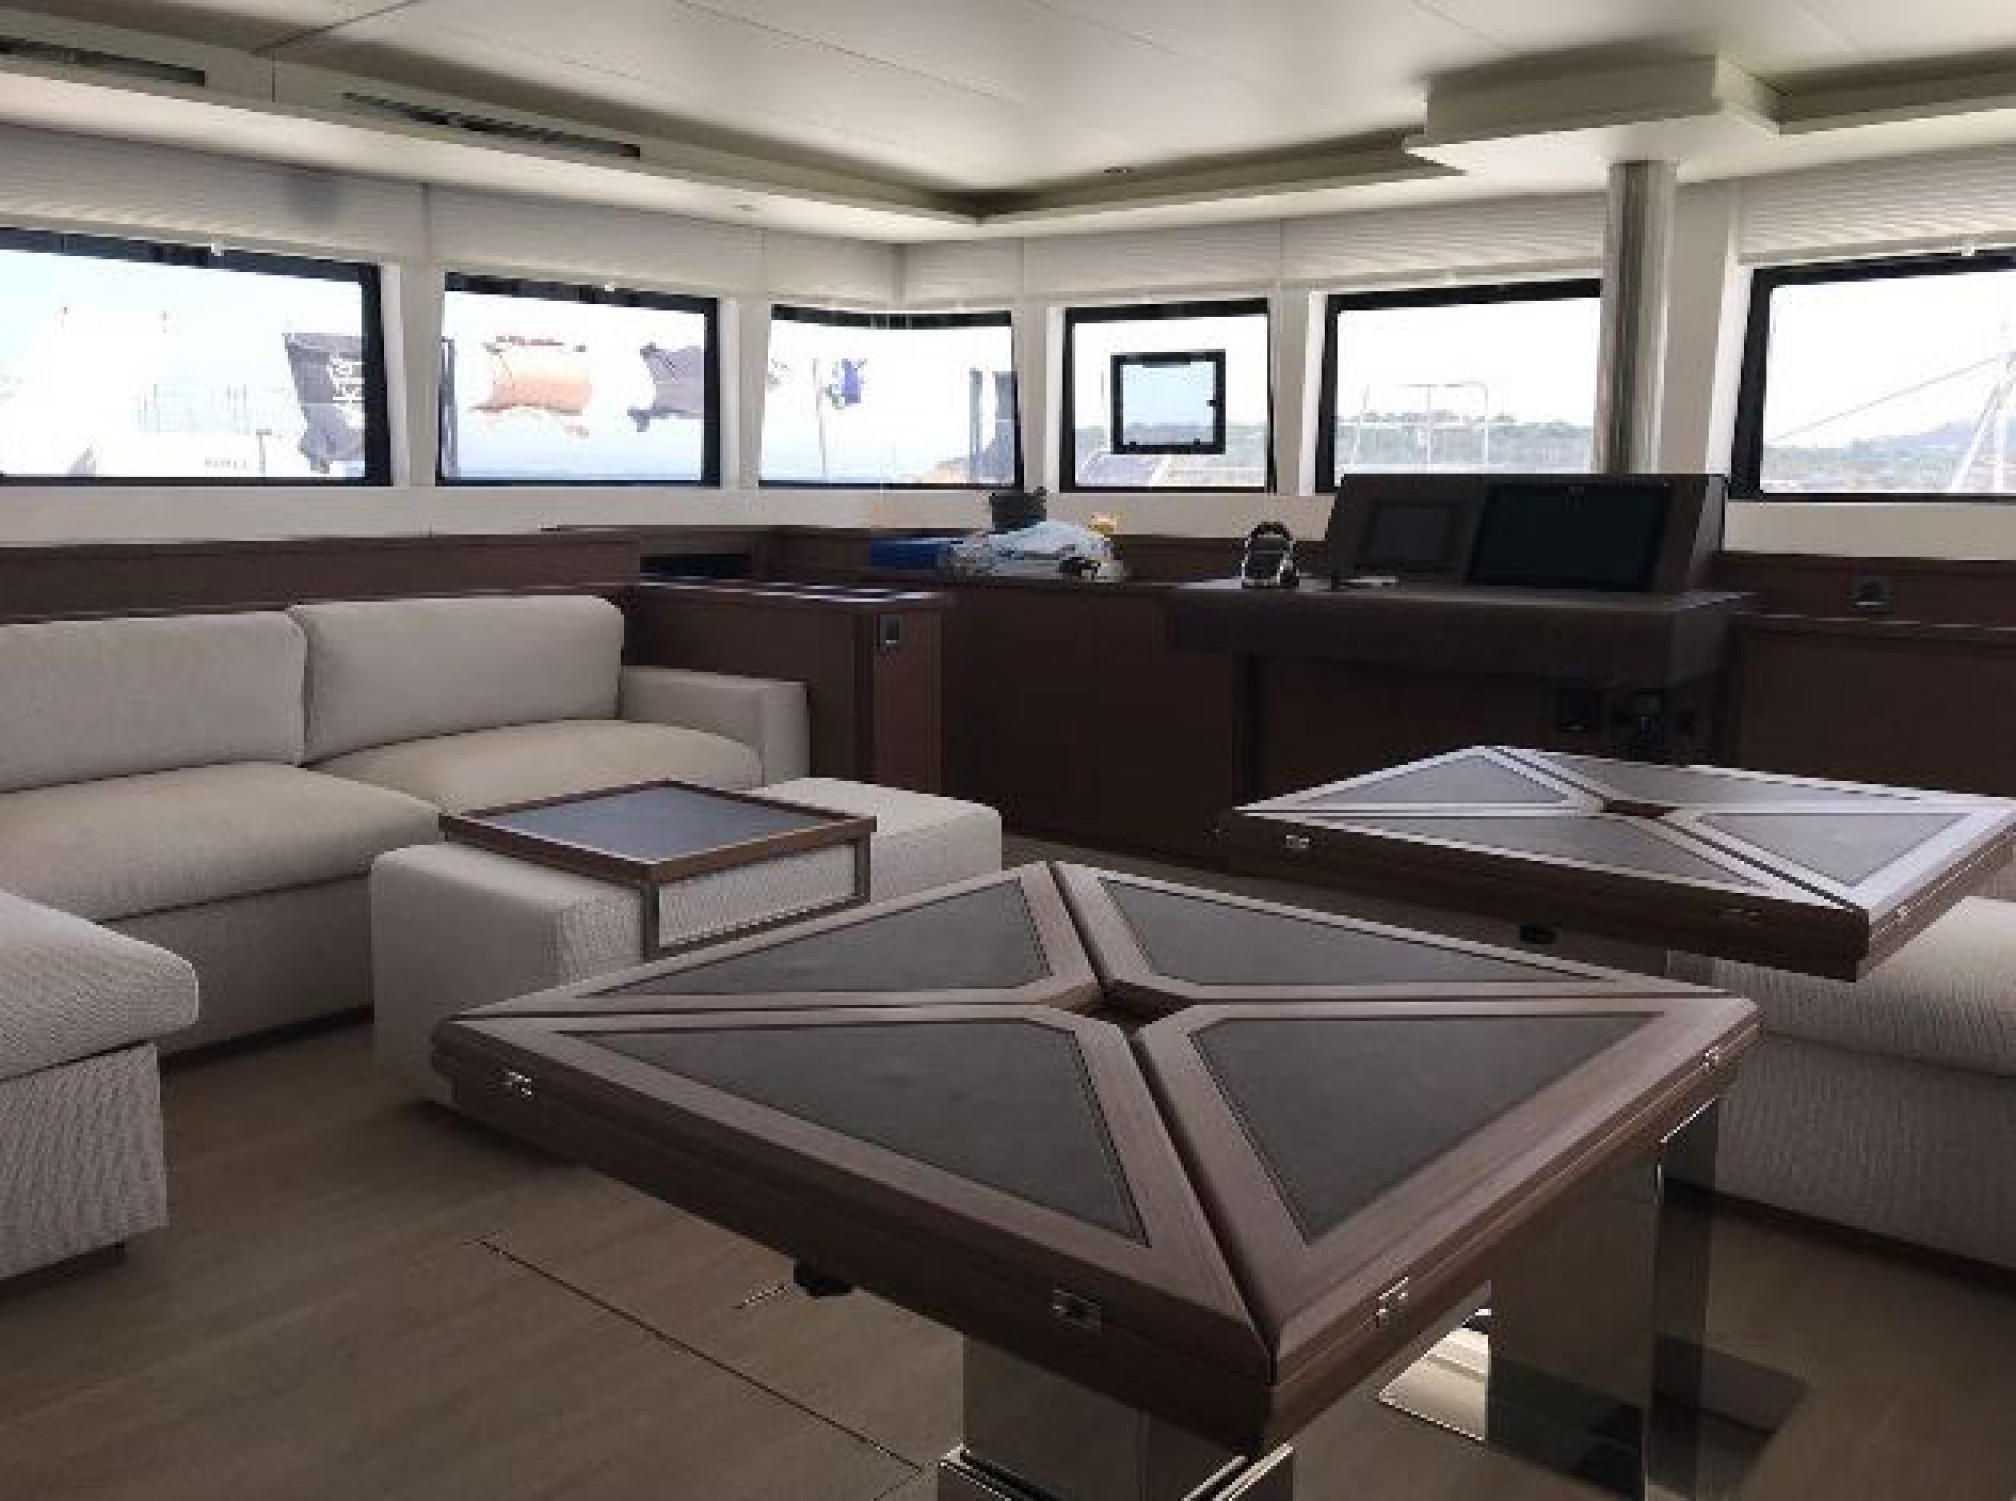 Rental catamaran  indoors